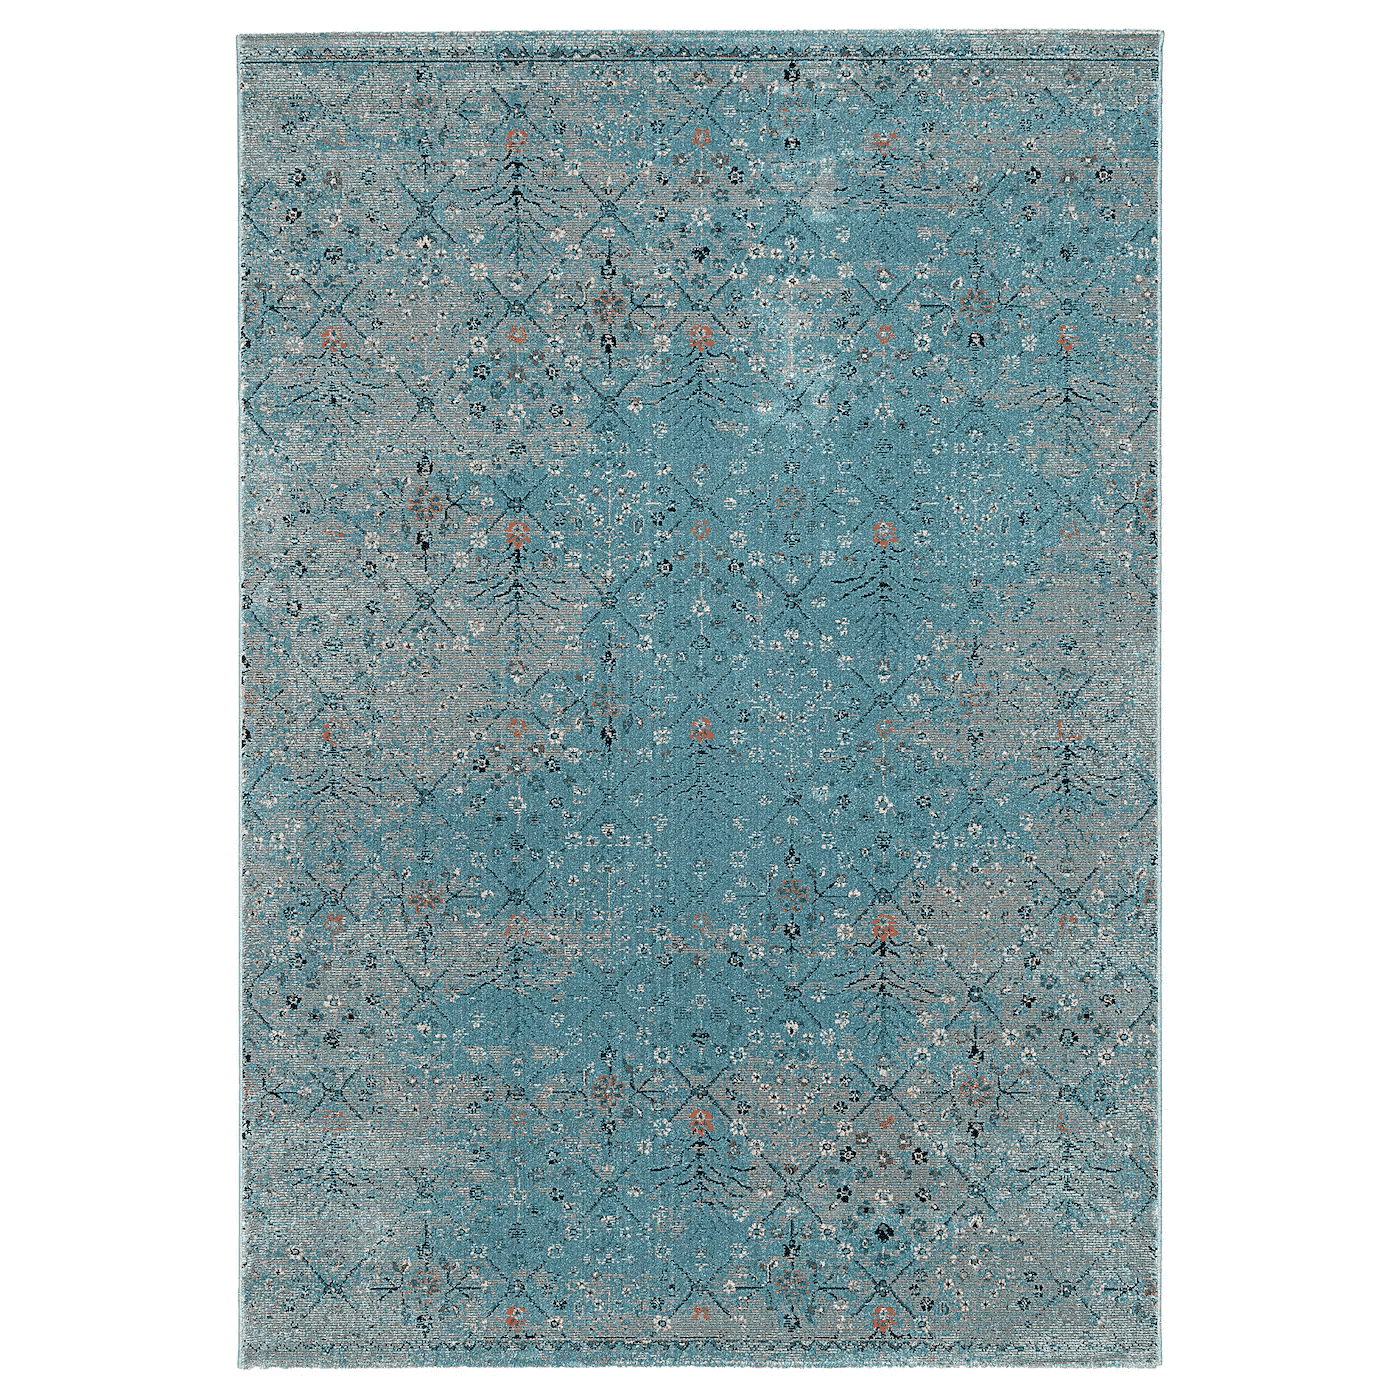 LAKOLK Rug, low pile, blue, antique look